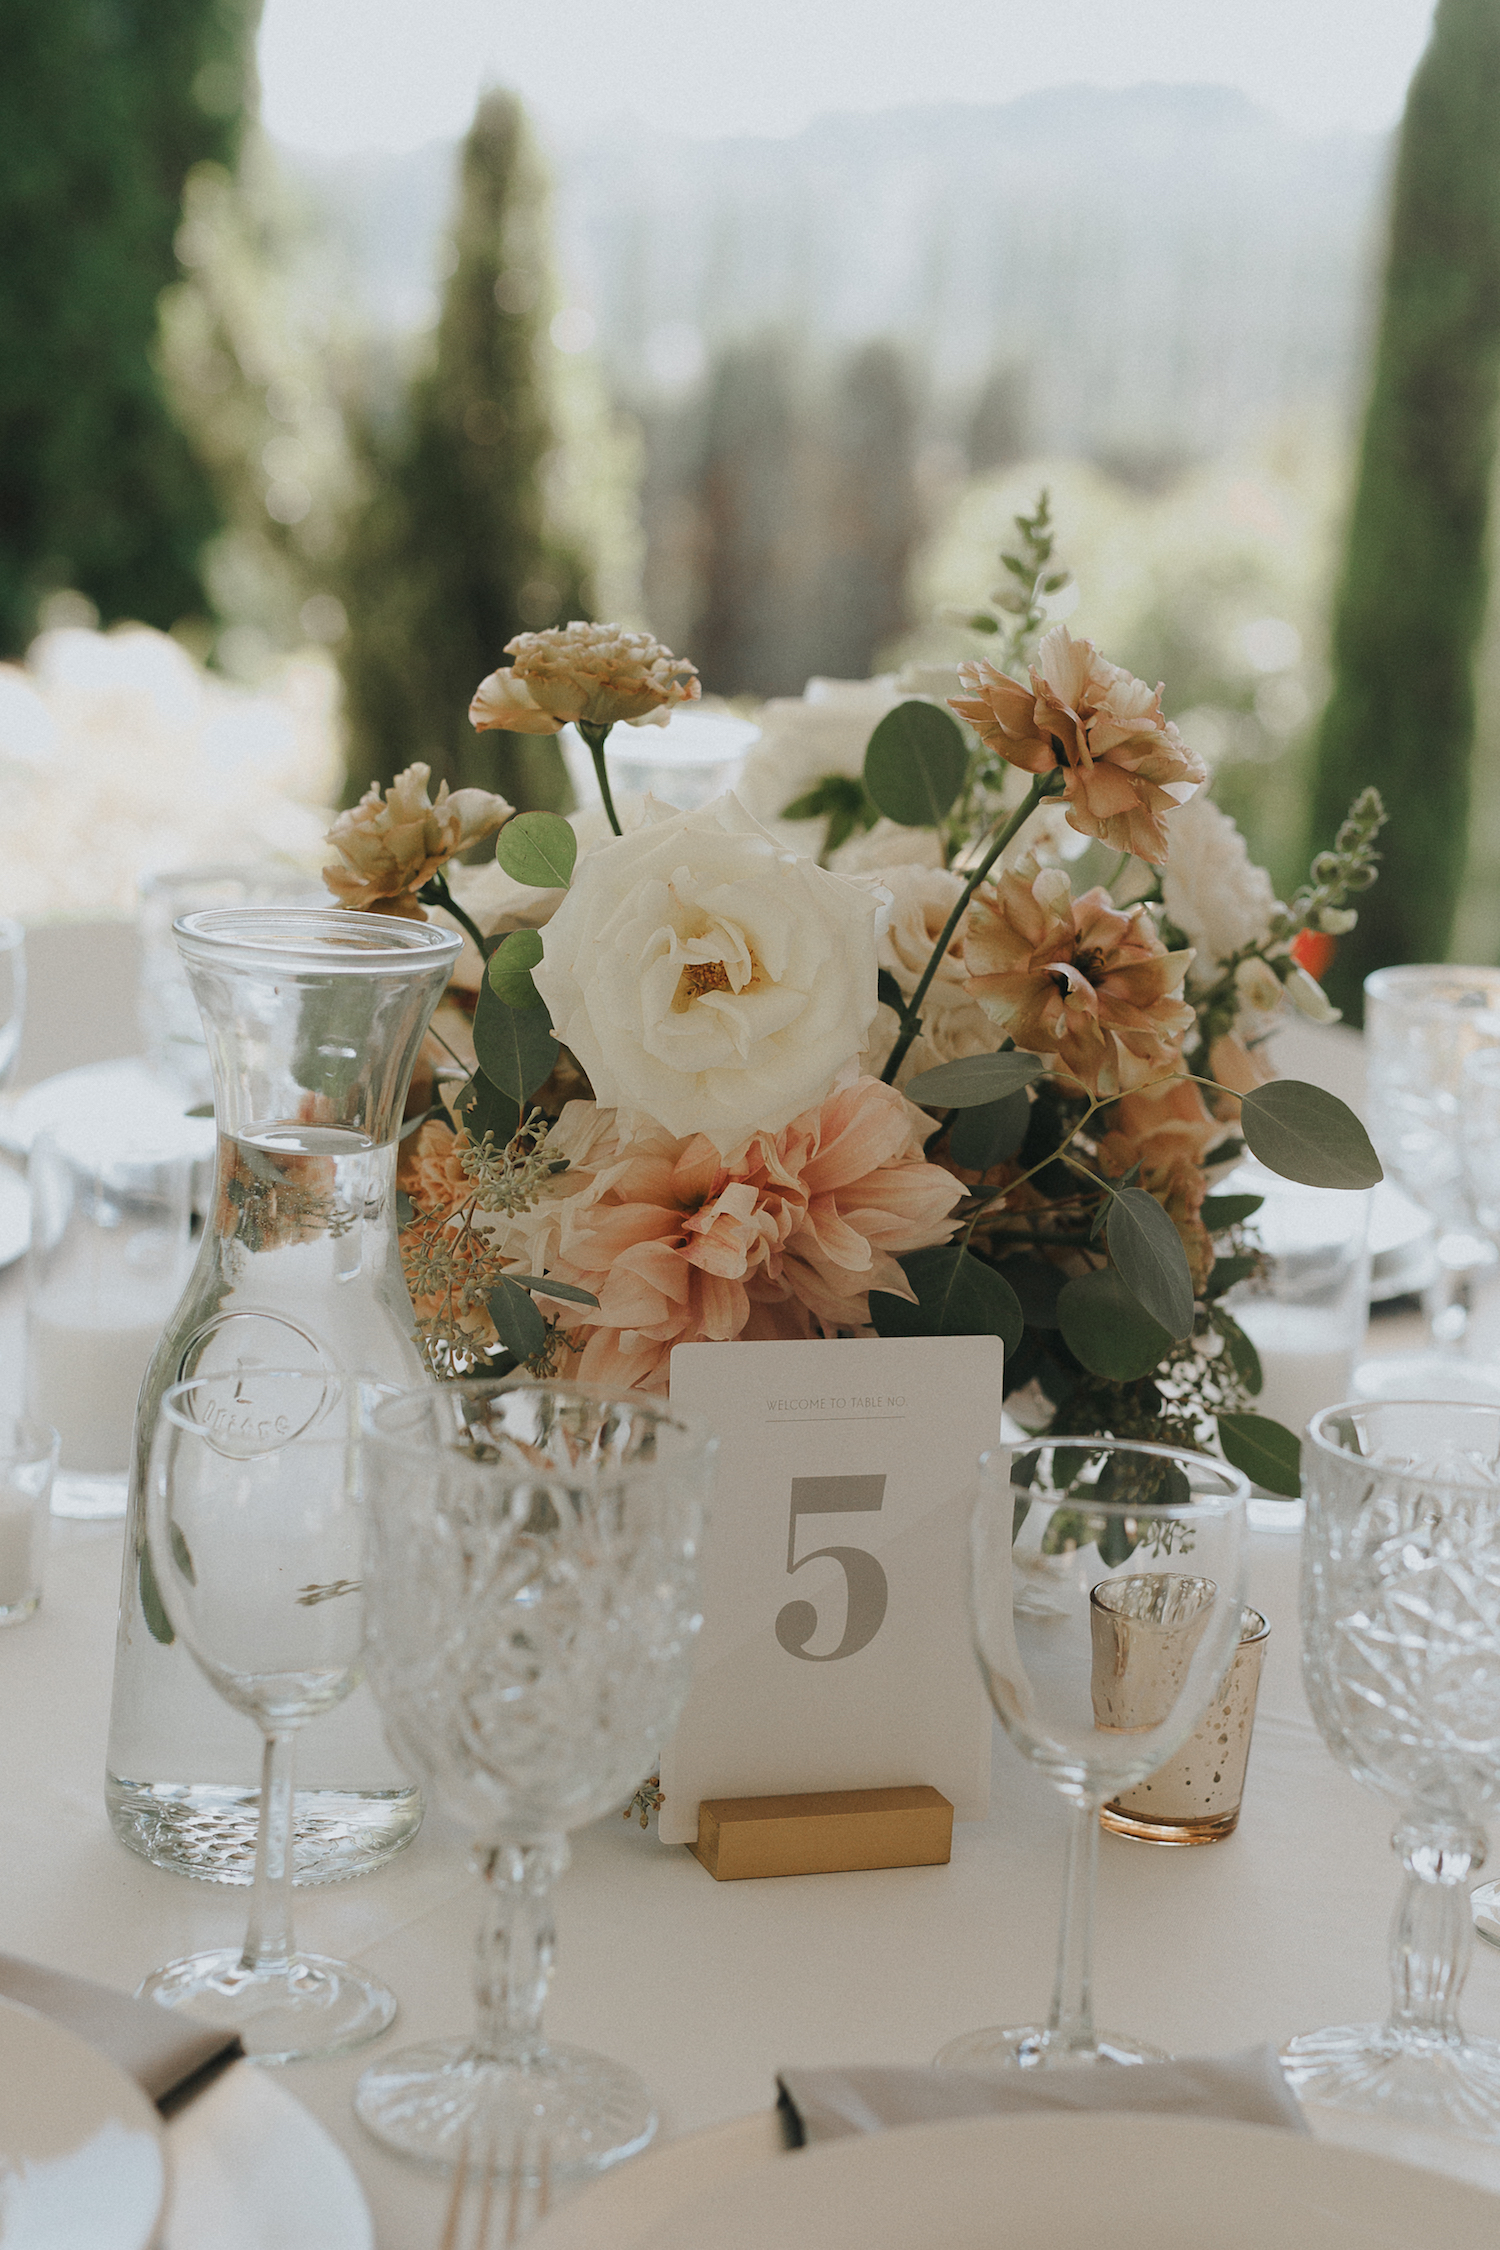 Wild Bloom Floral - Rachel Birkhofer Photography - Jessica and Phil - Real Wedding - Seattle 30.jpeg